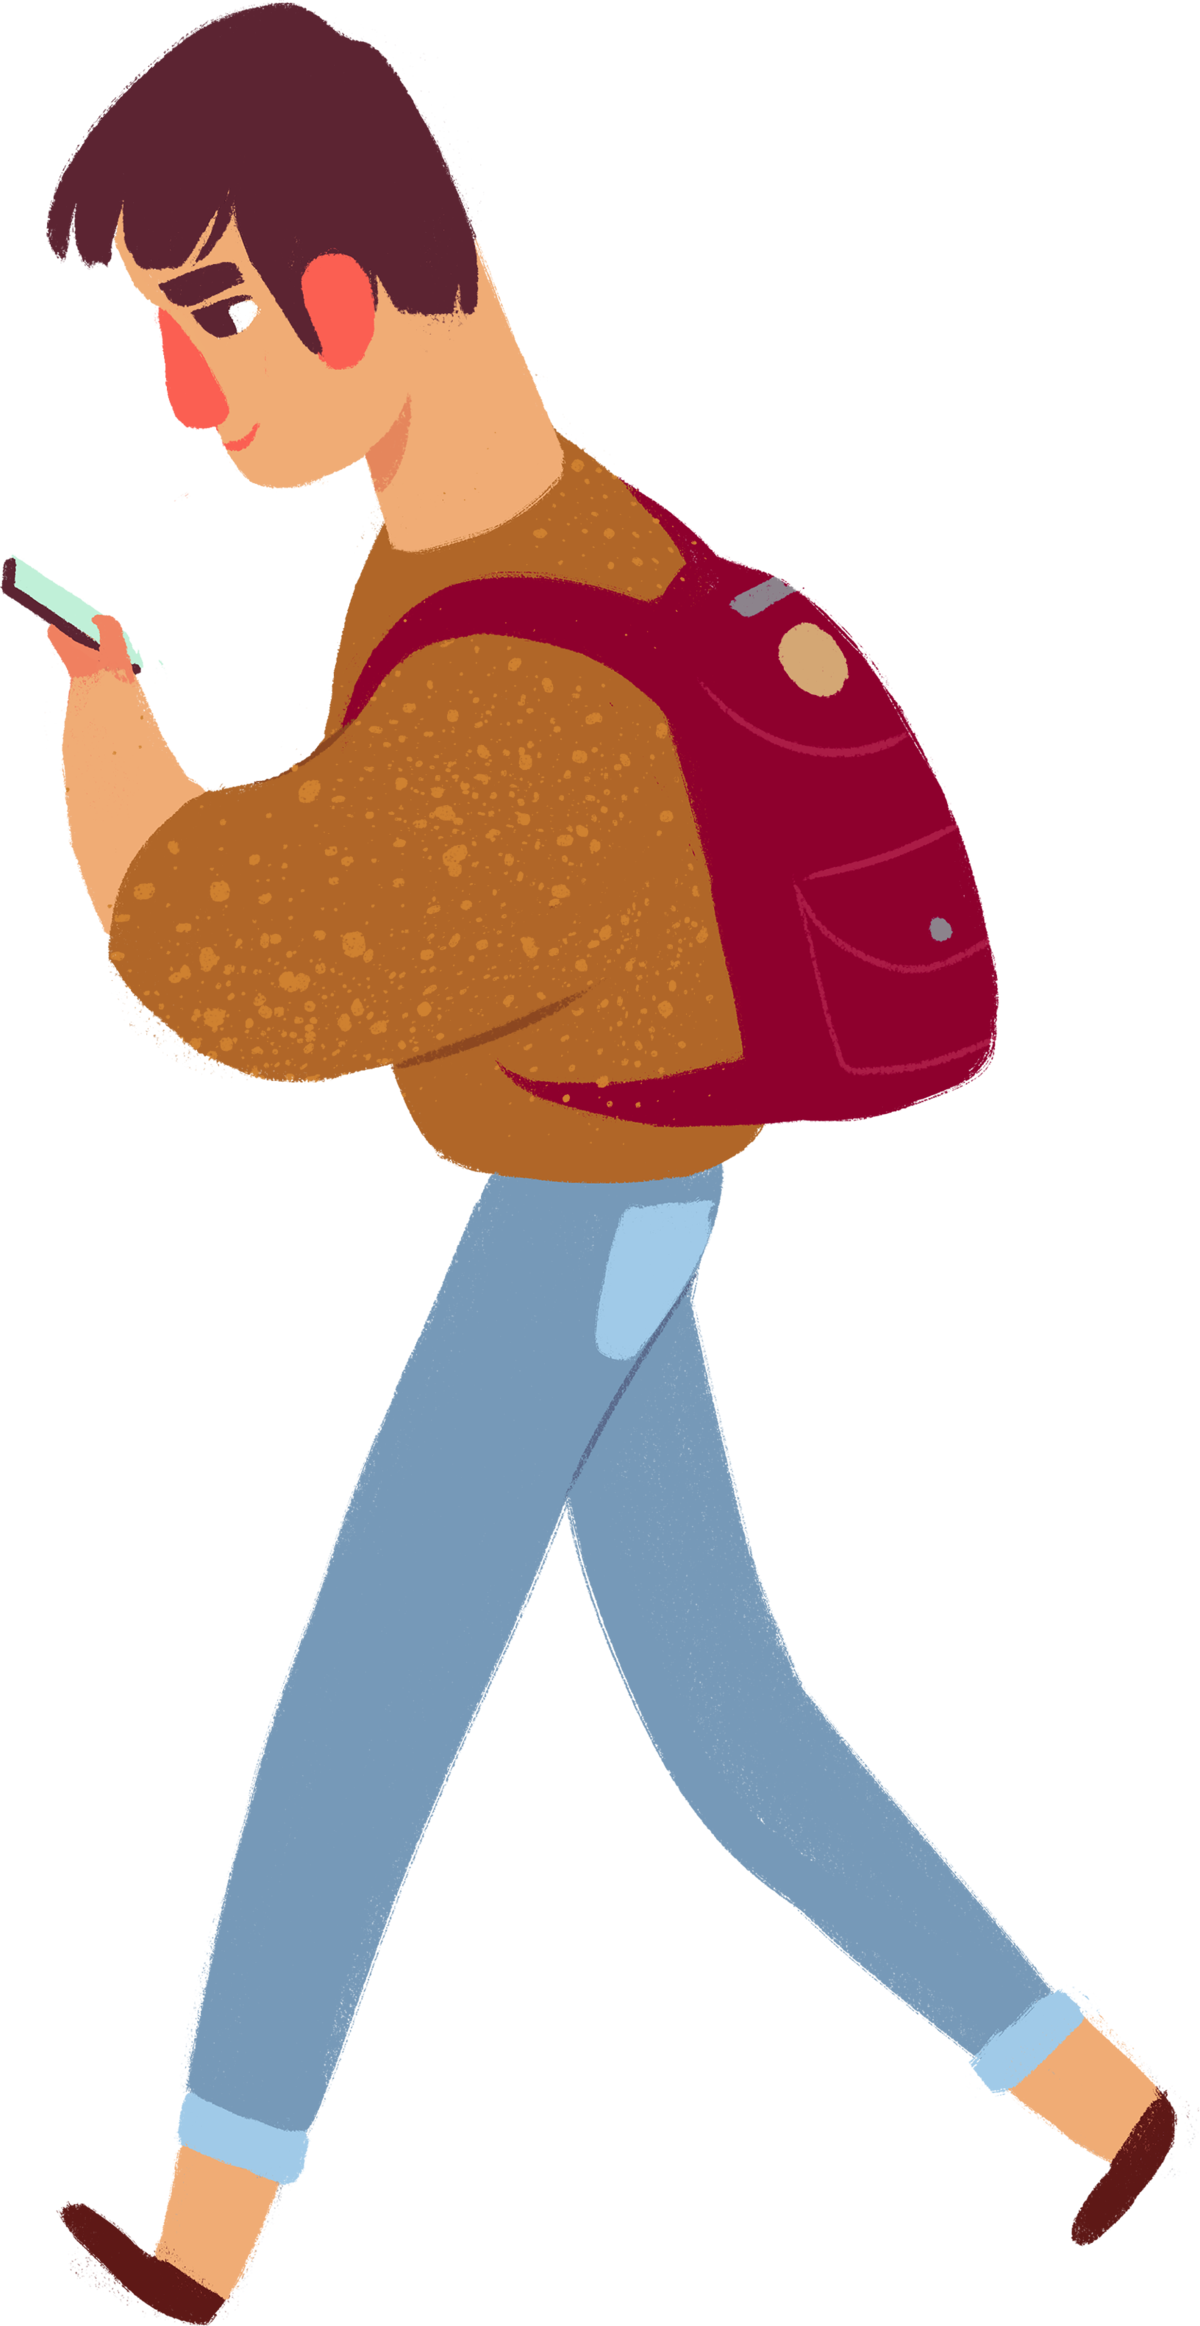 cartoon man wearing a backpack walking while using his phone